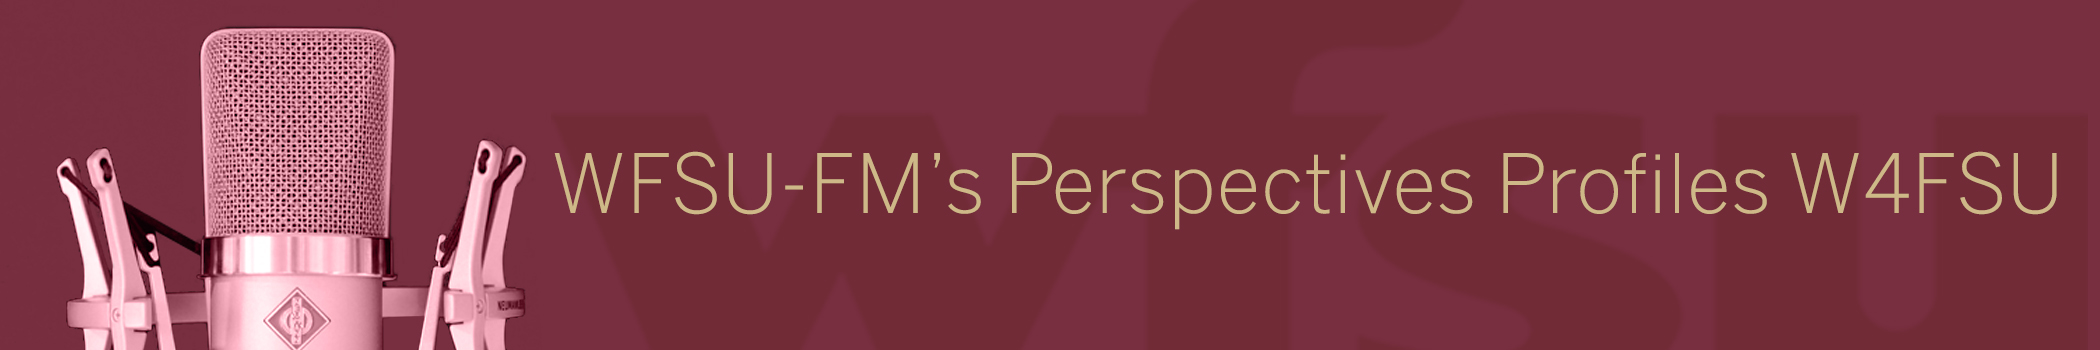 WFSU-FM's Perspectives Profiles W4FSU